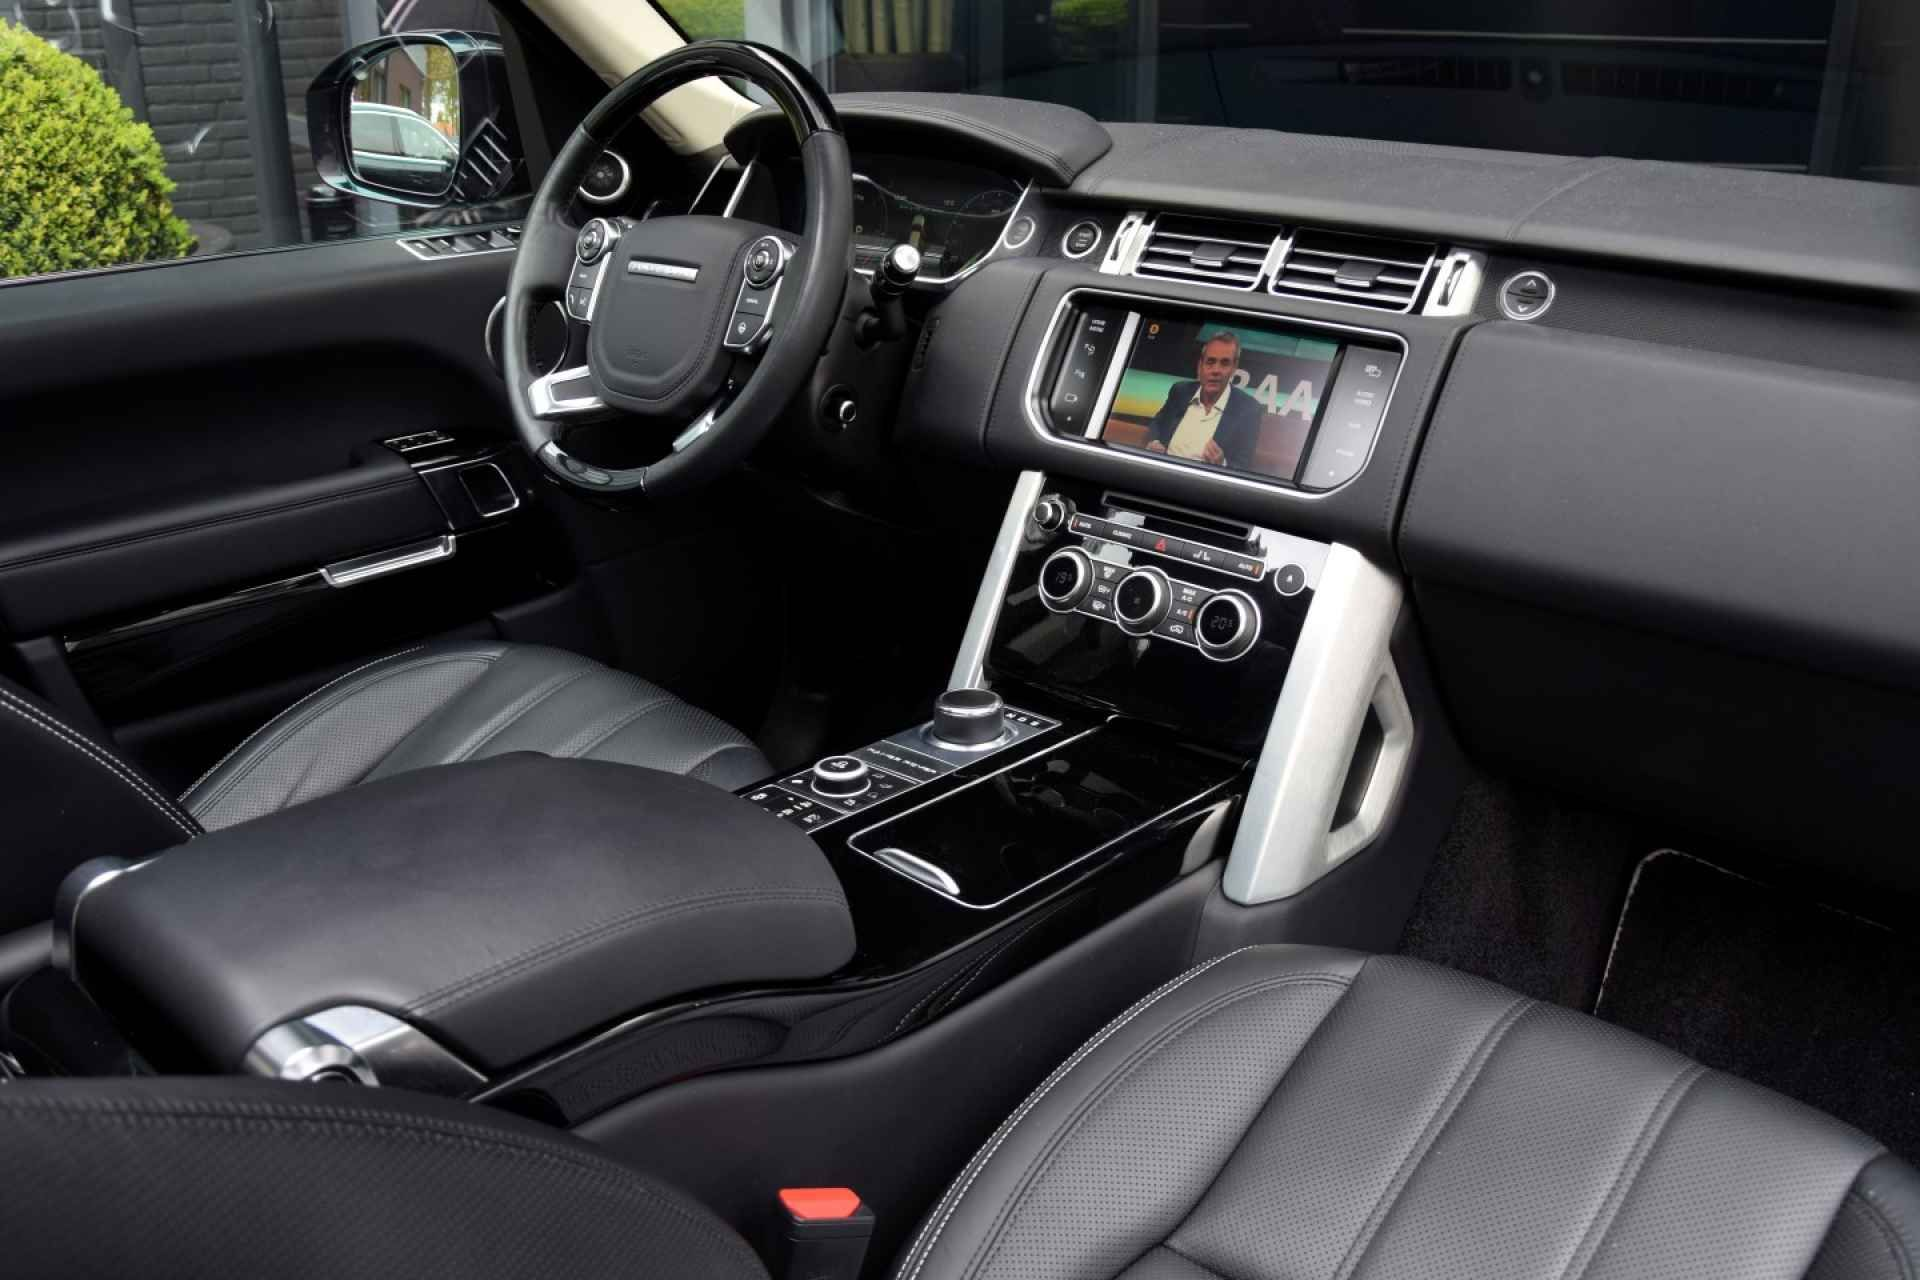 The interior is immaculate.... Range rover black